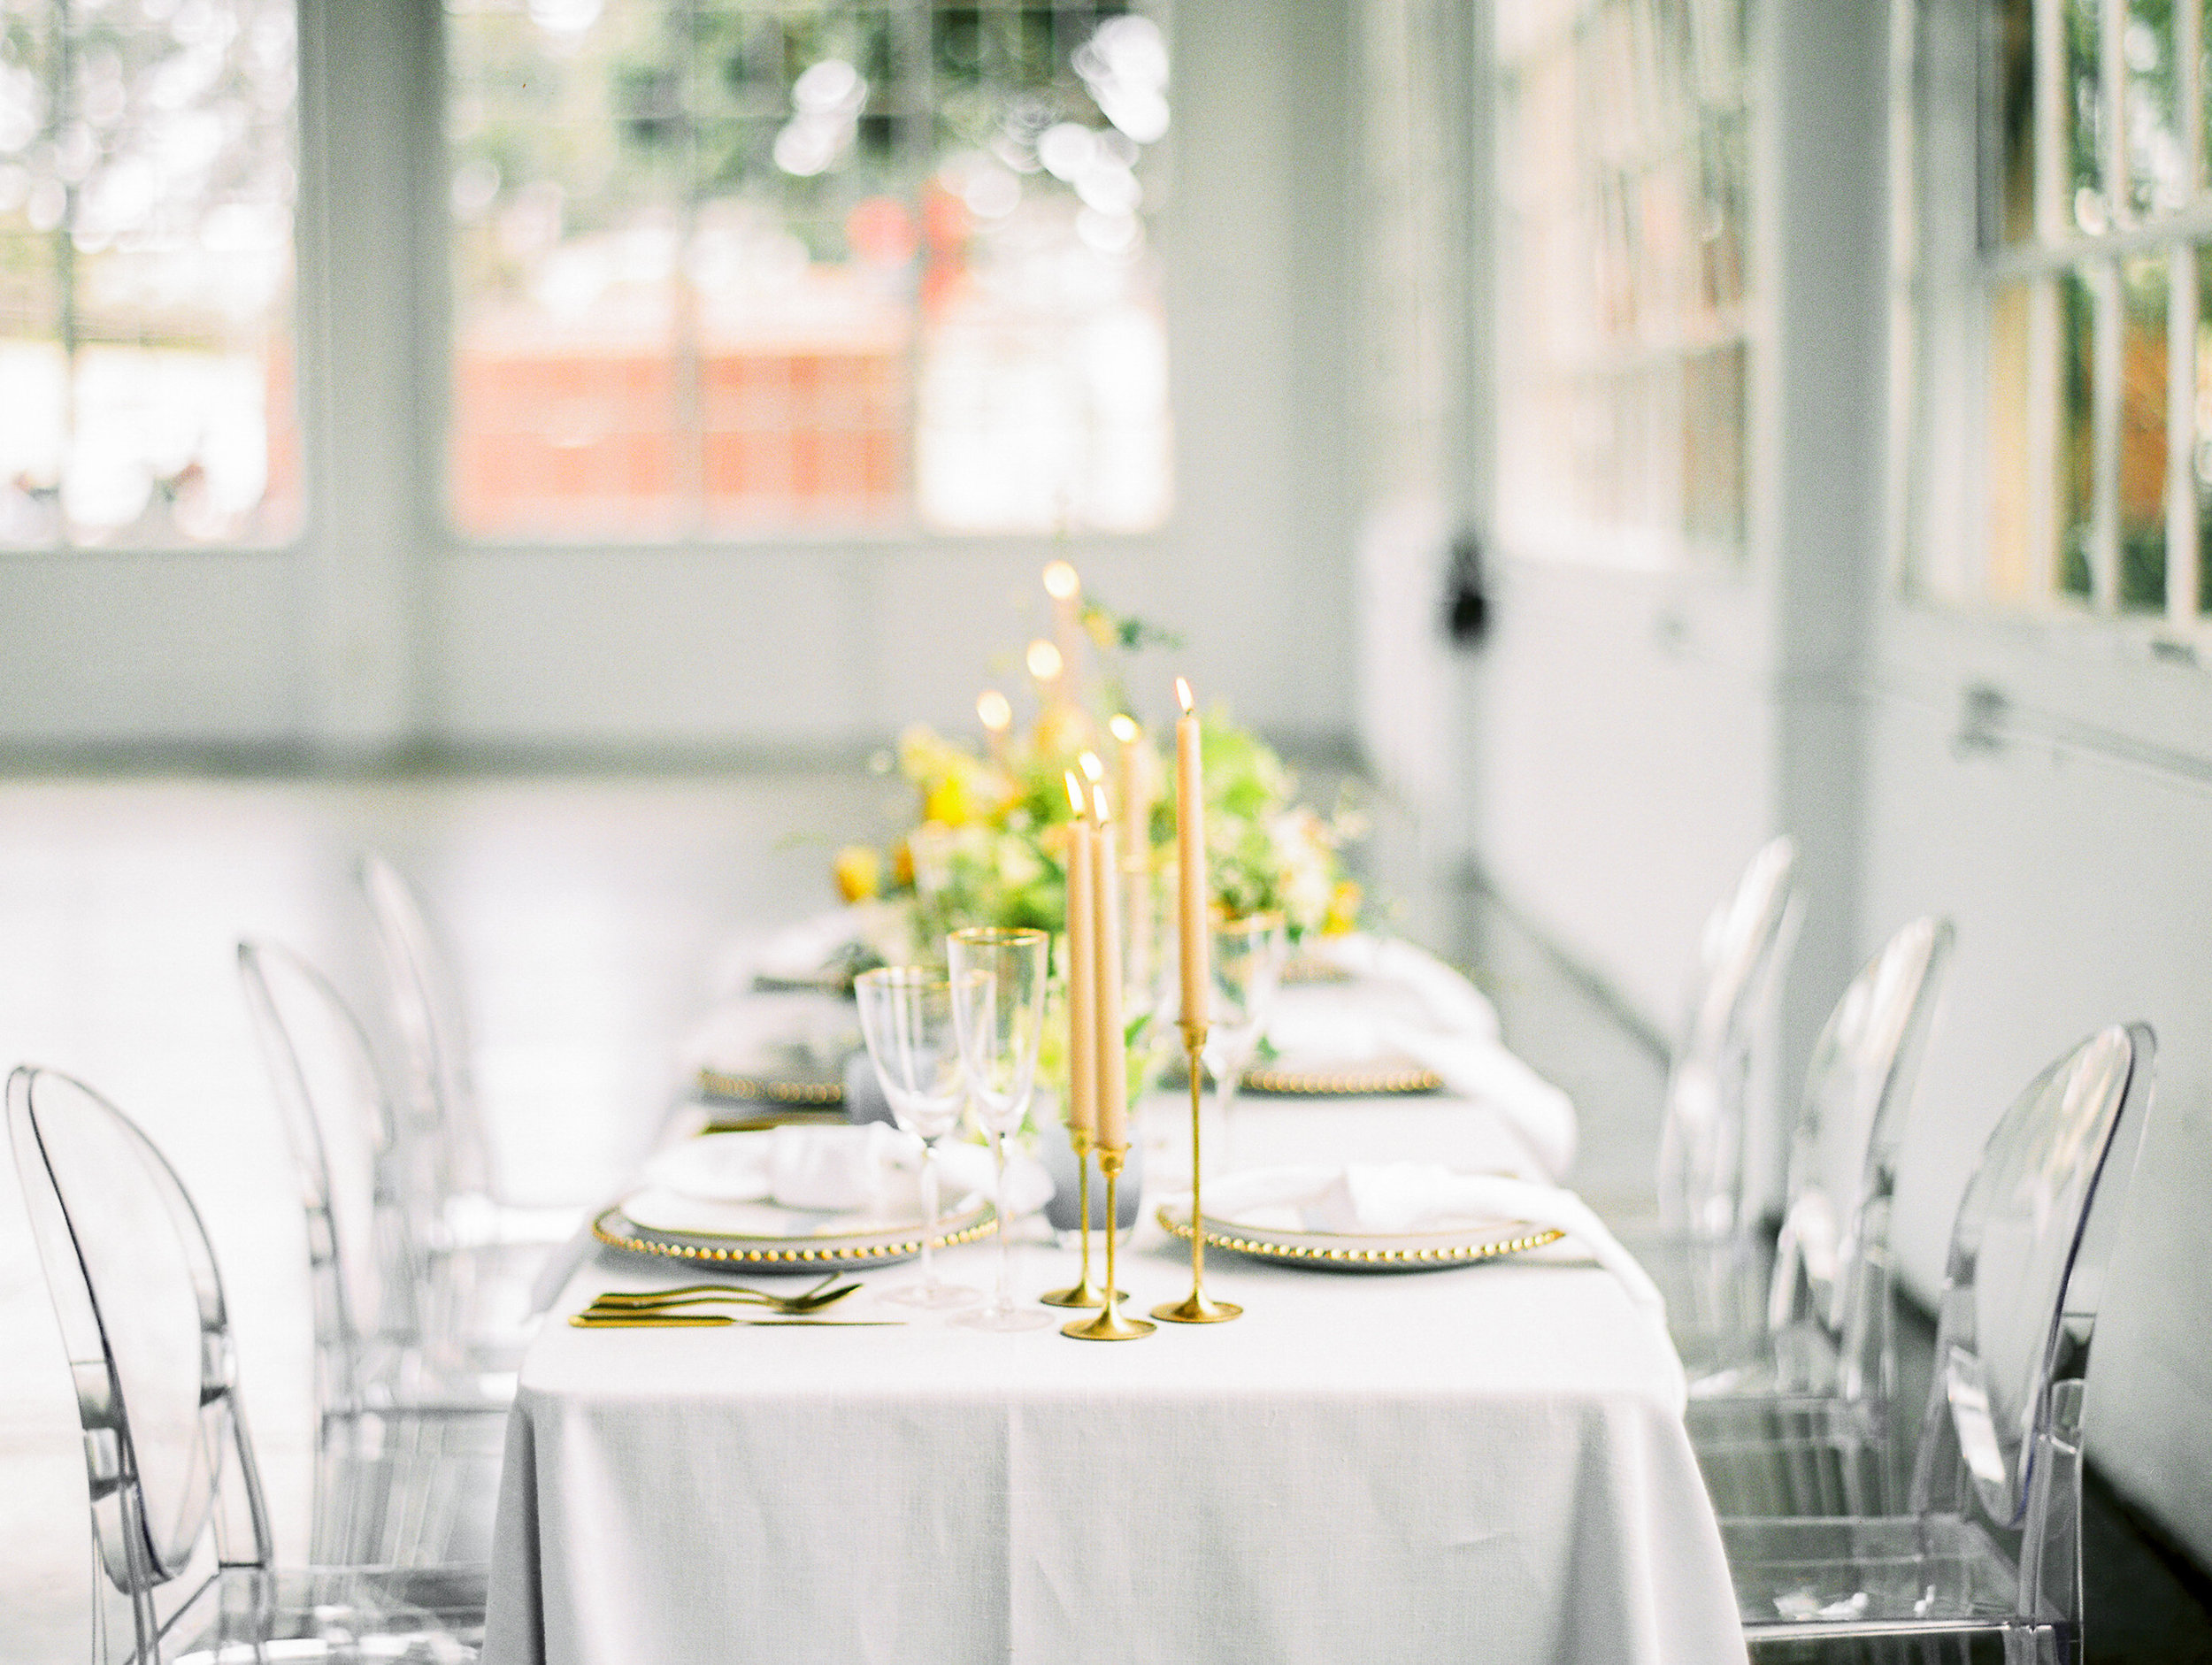 Simple White, Gold, and Green Wedding Tablescape With Transparent Chairs